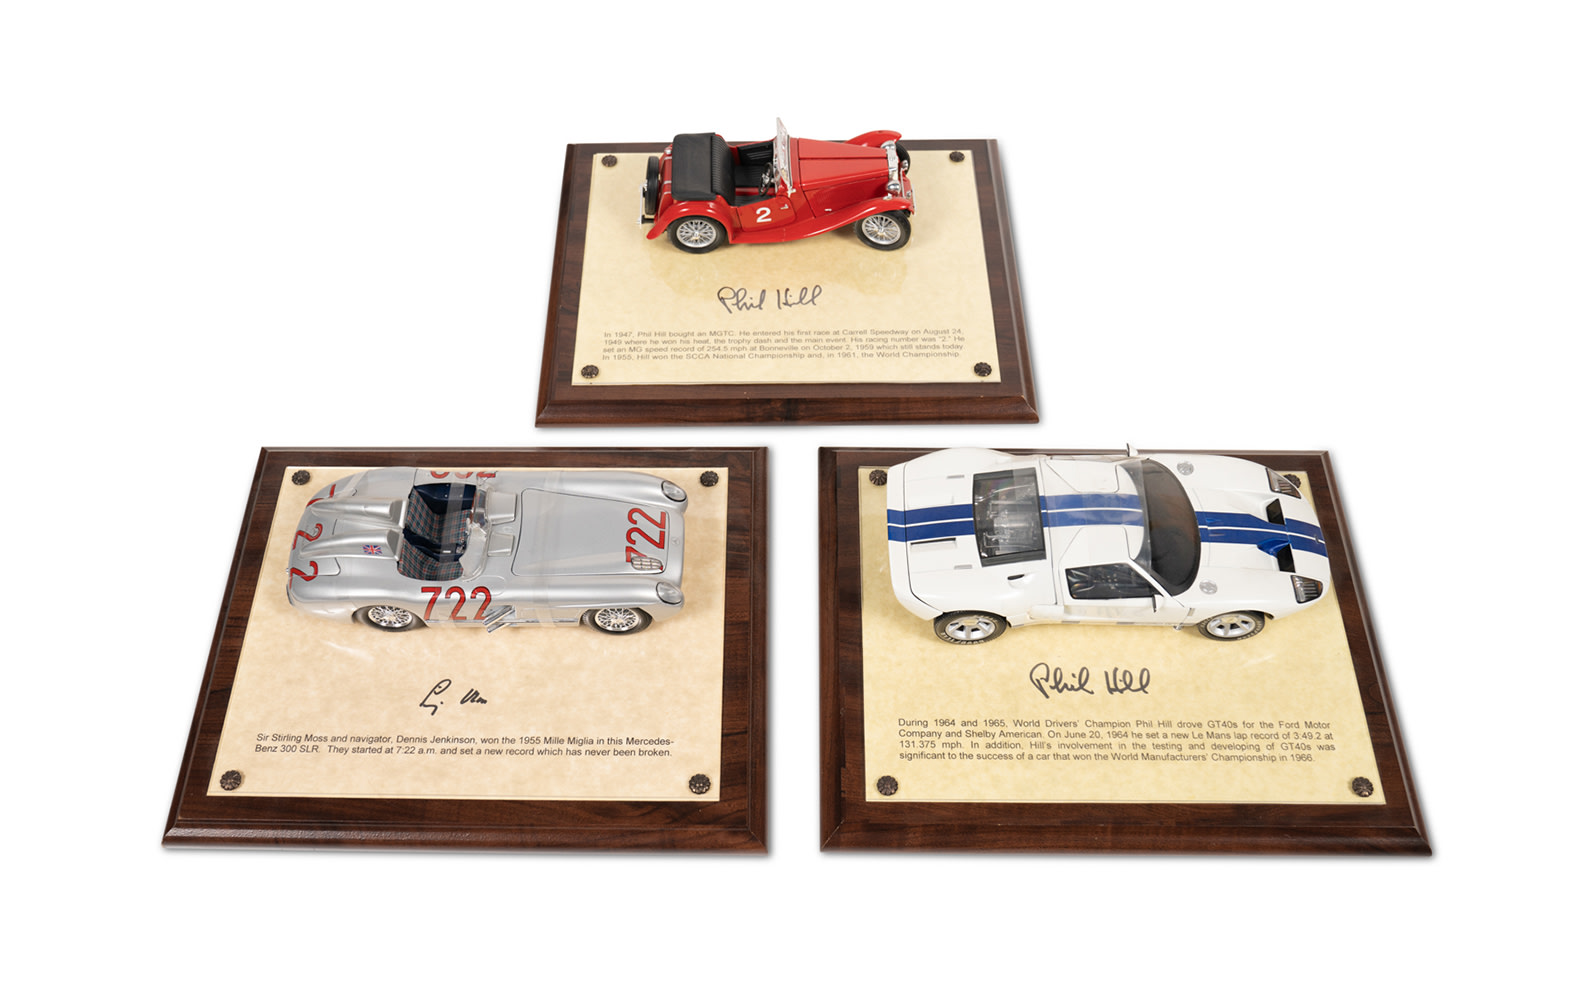 1:18 Scale Models Mounted on Plaques